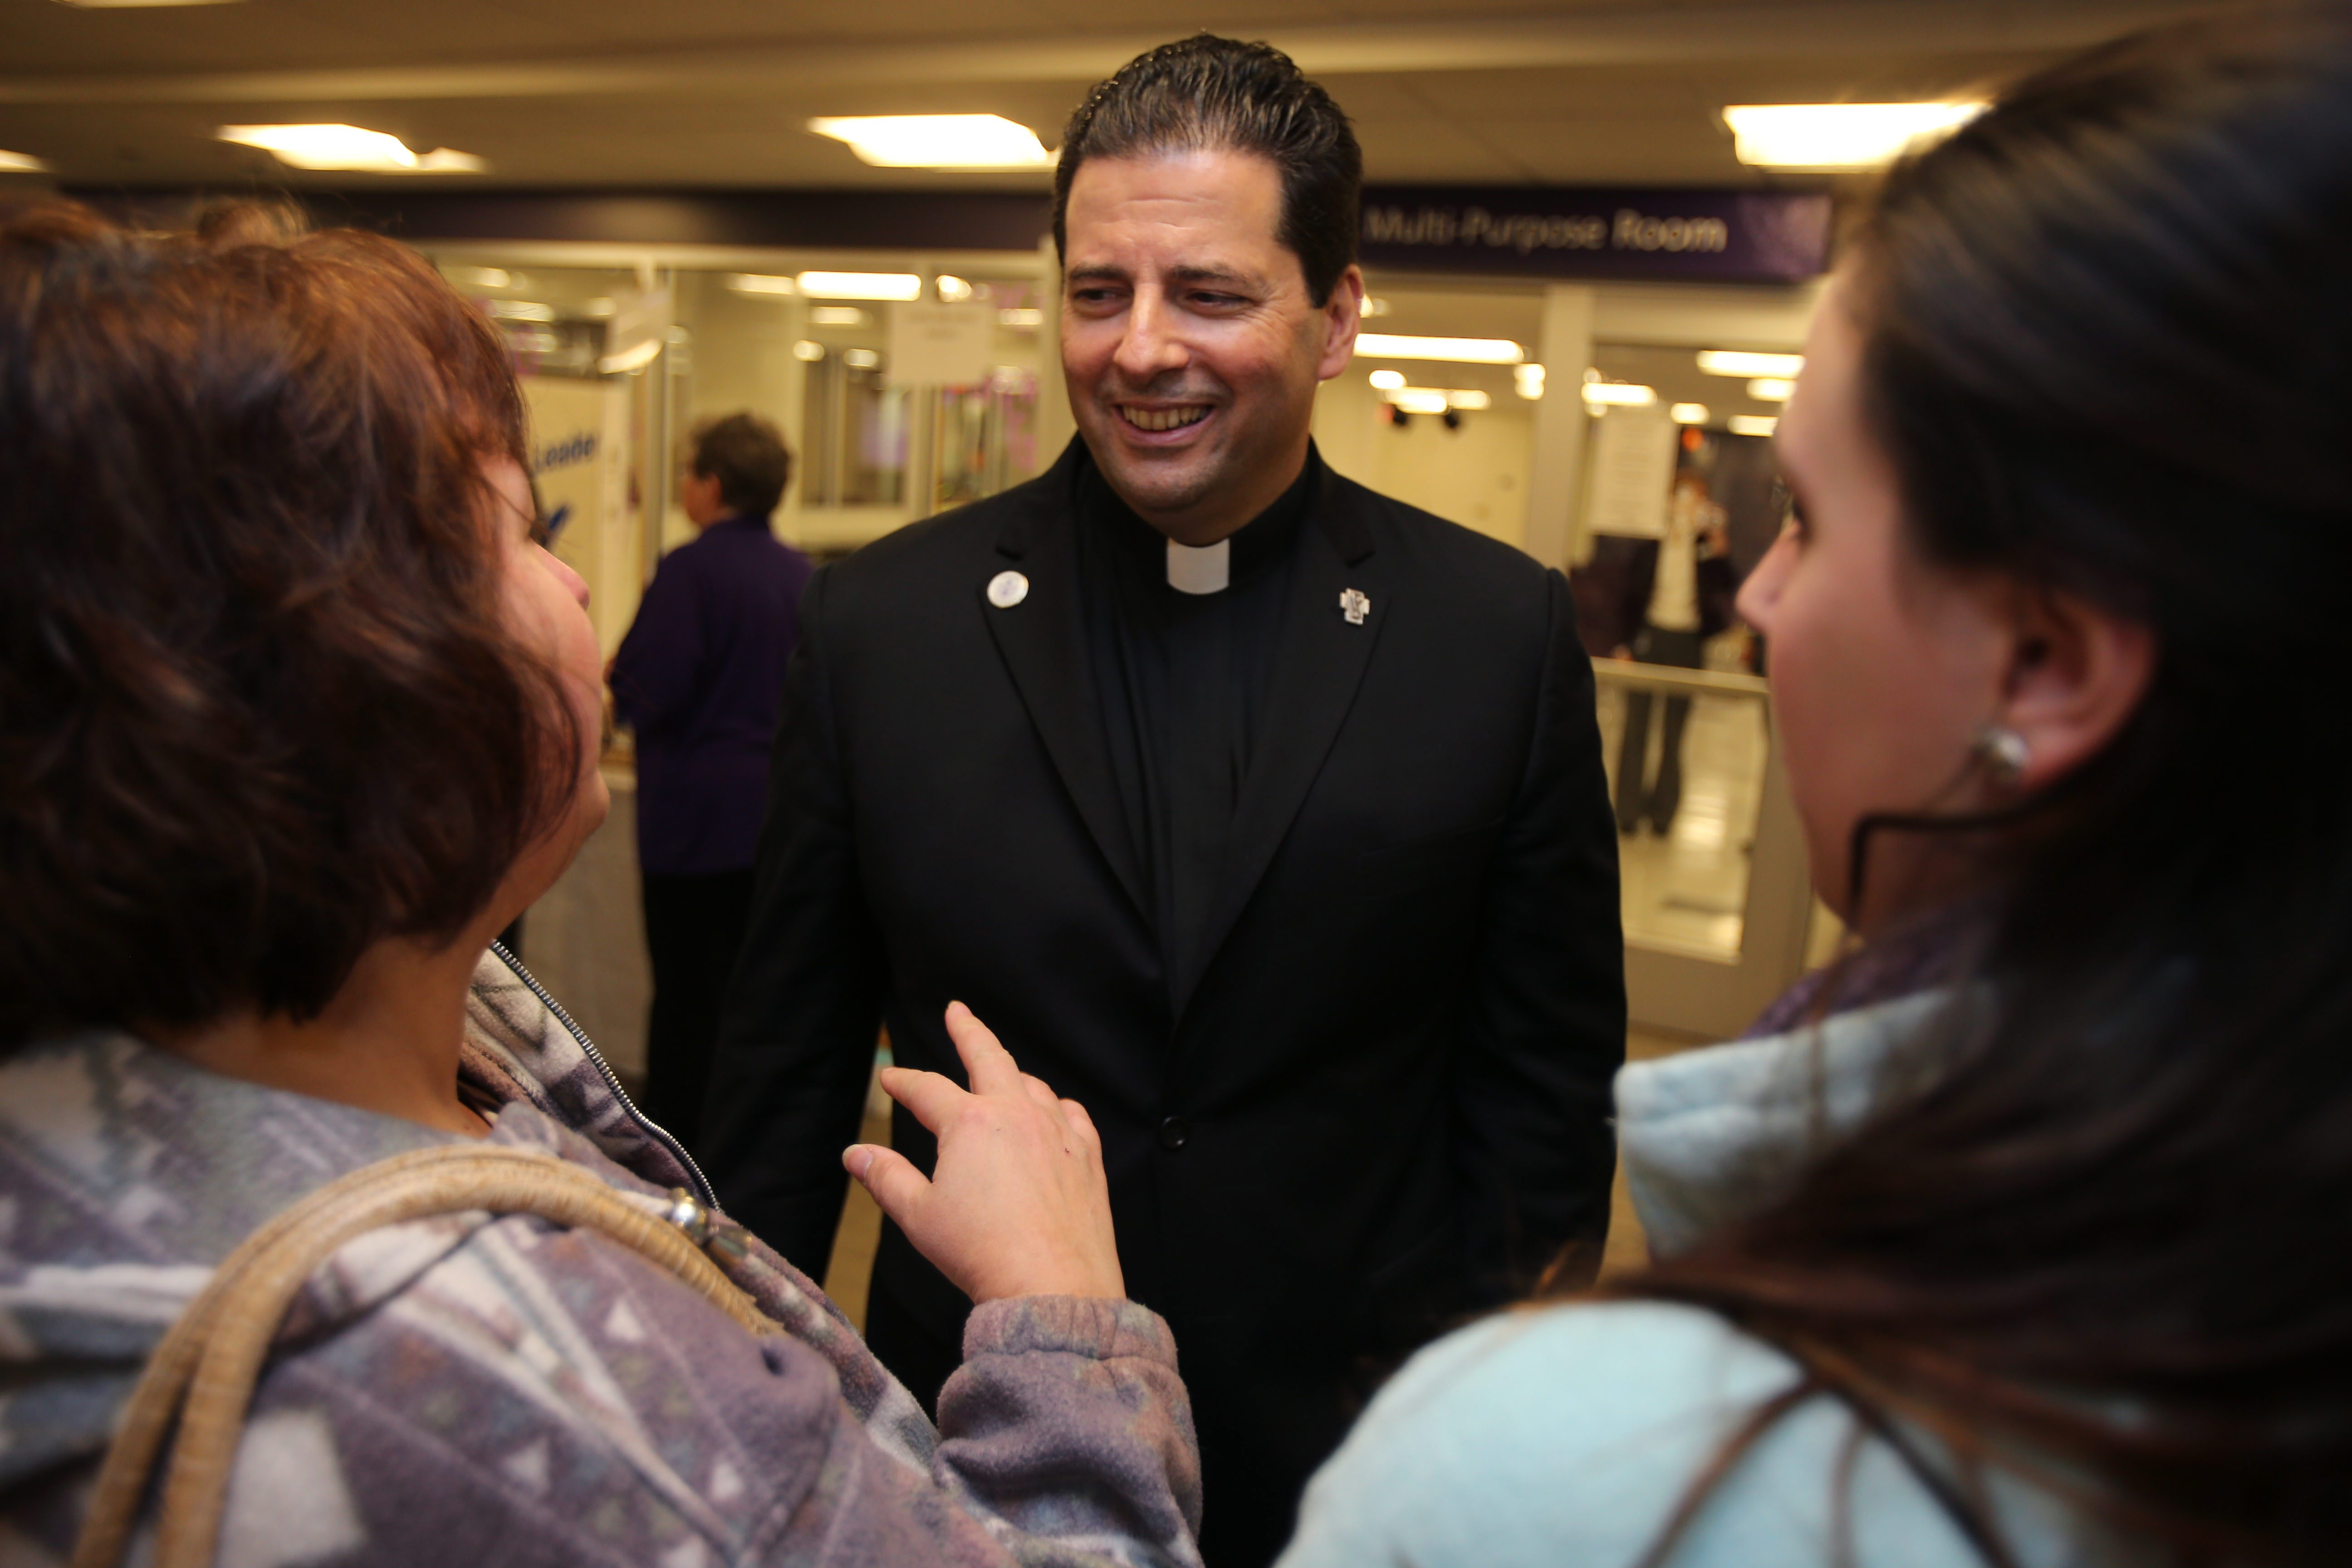 The Rev. James J. Maher, president of Niagara University, said the university is 'eager and grateful to have this opportunity to enhance the family-focused work of Help Me Grow.'